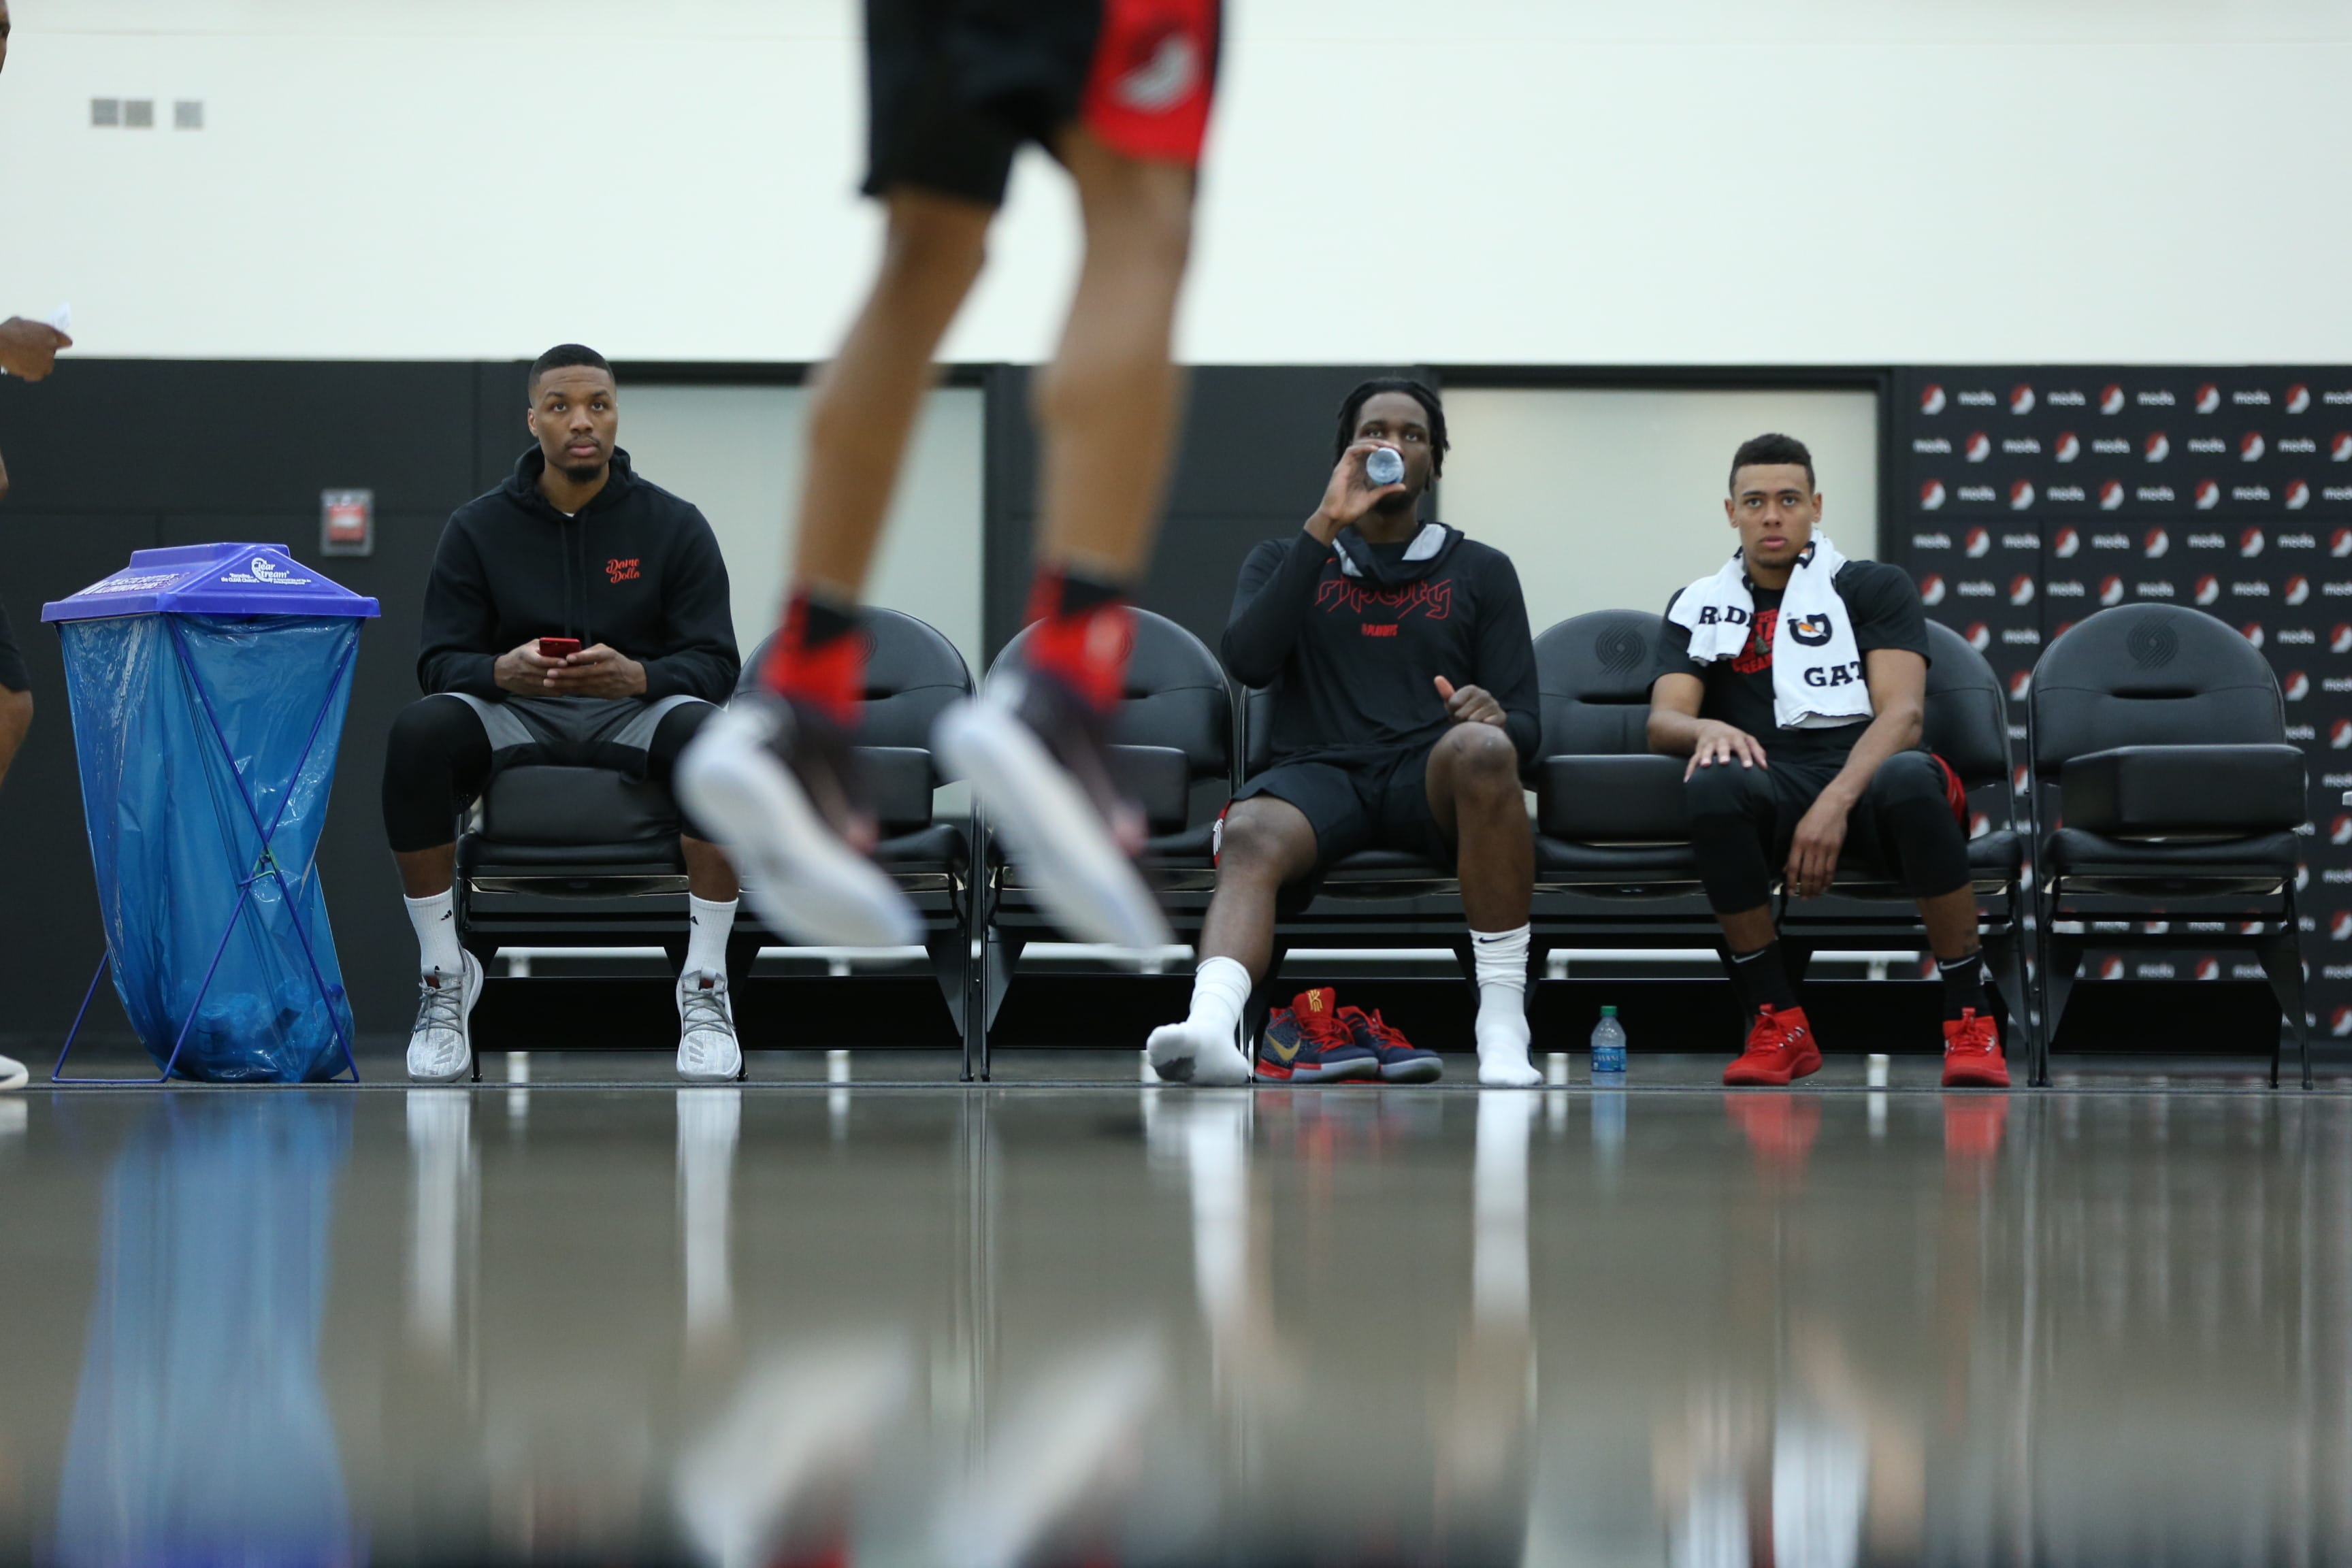 16eeabf7e6a Pre-draft workout session at the Trail Blazers practice facility today  included Anfernee Simons